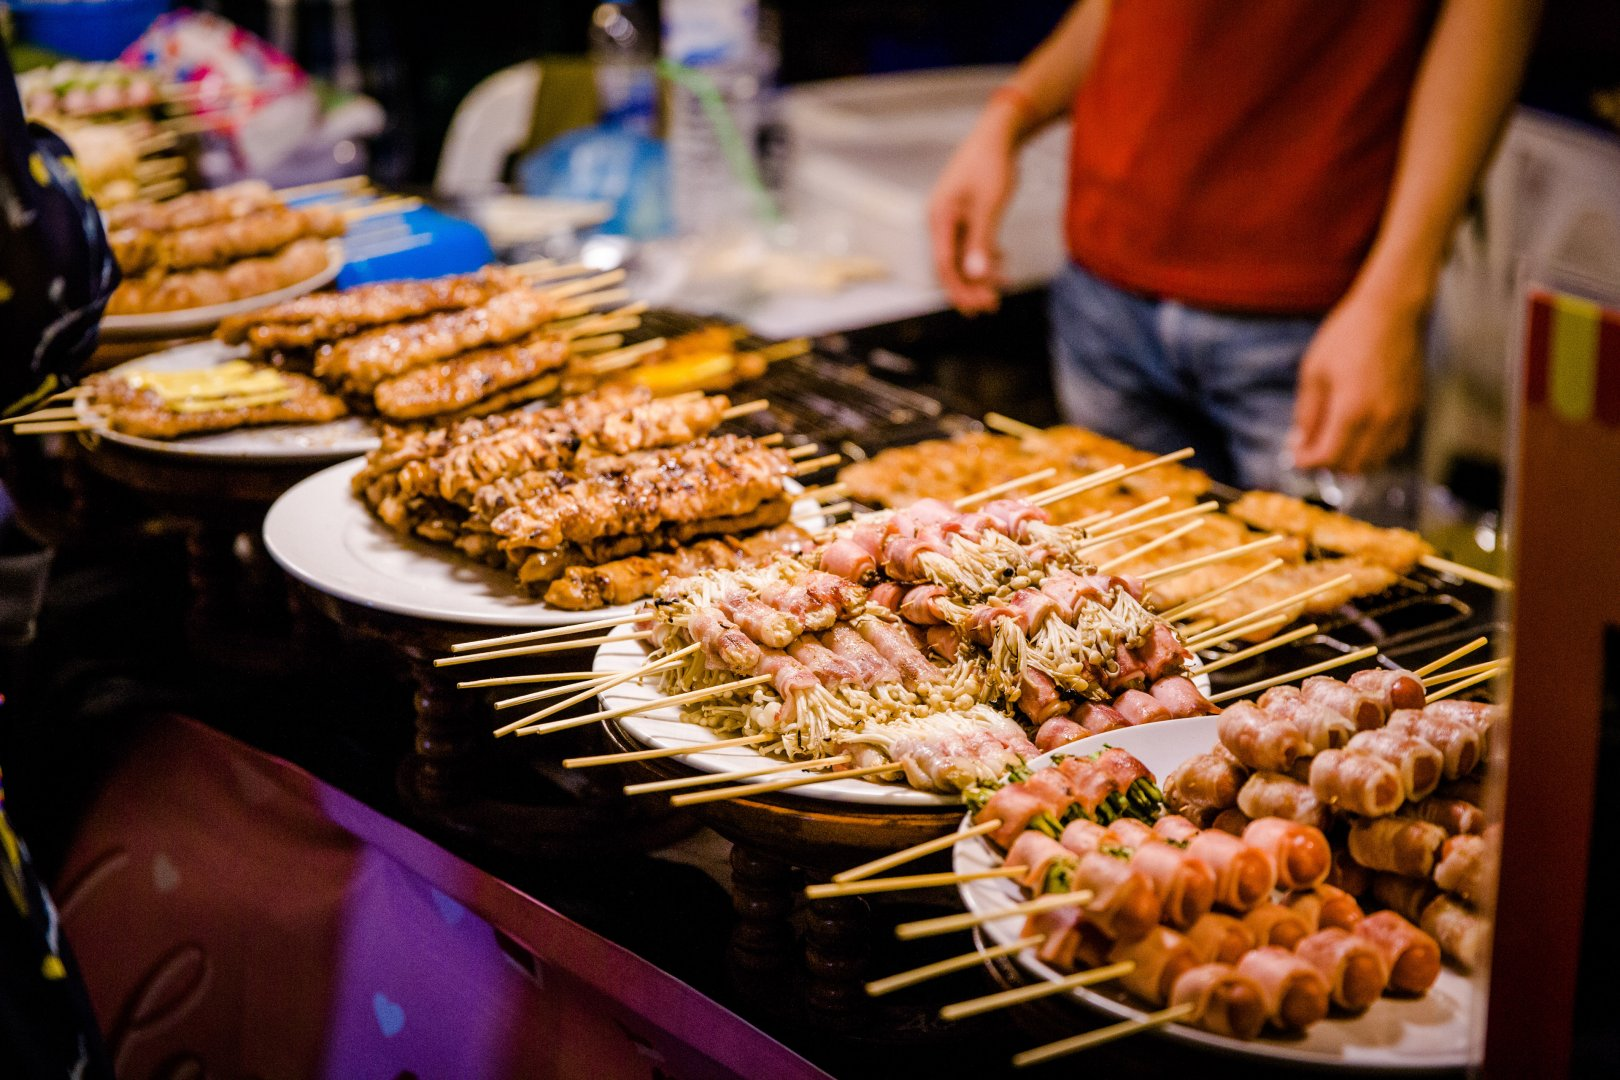 Dish Food Cuisine Barbecue Street food Grilling Delicacy Yakitori Barbecue grill Ingredient Grillades Finger food Churrasco food Meat Roasting Cooking Outdoor grill Thai food Produce Snack Skewer appetizer Satay